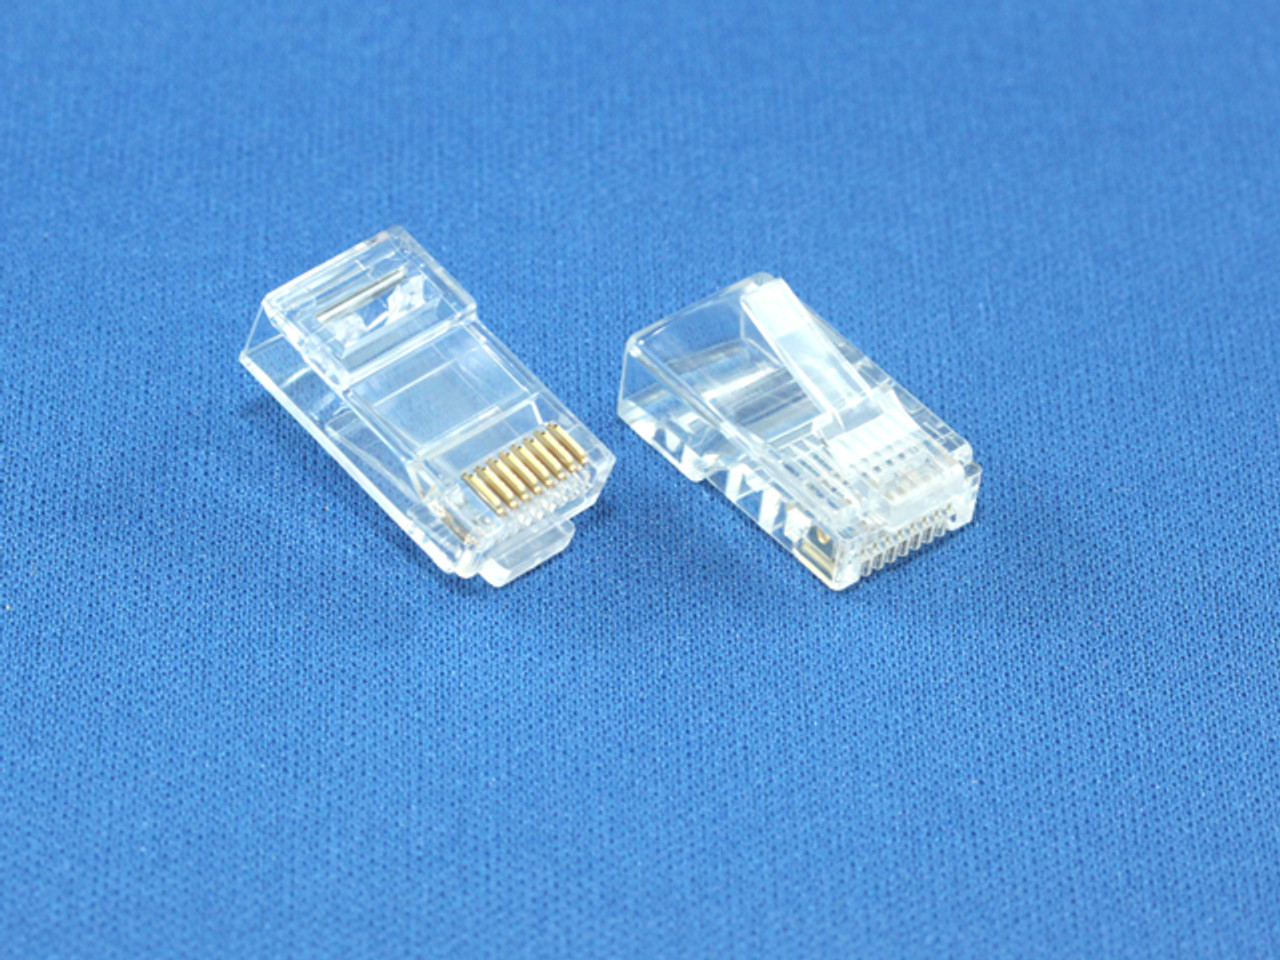 Product image for RJ-45 8P8C Connector For Stranded Cat5E Cable   CX Computer Superstore